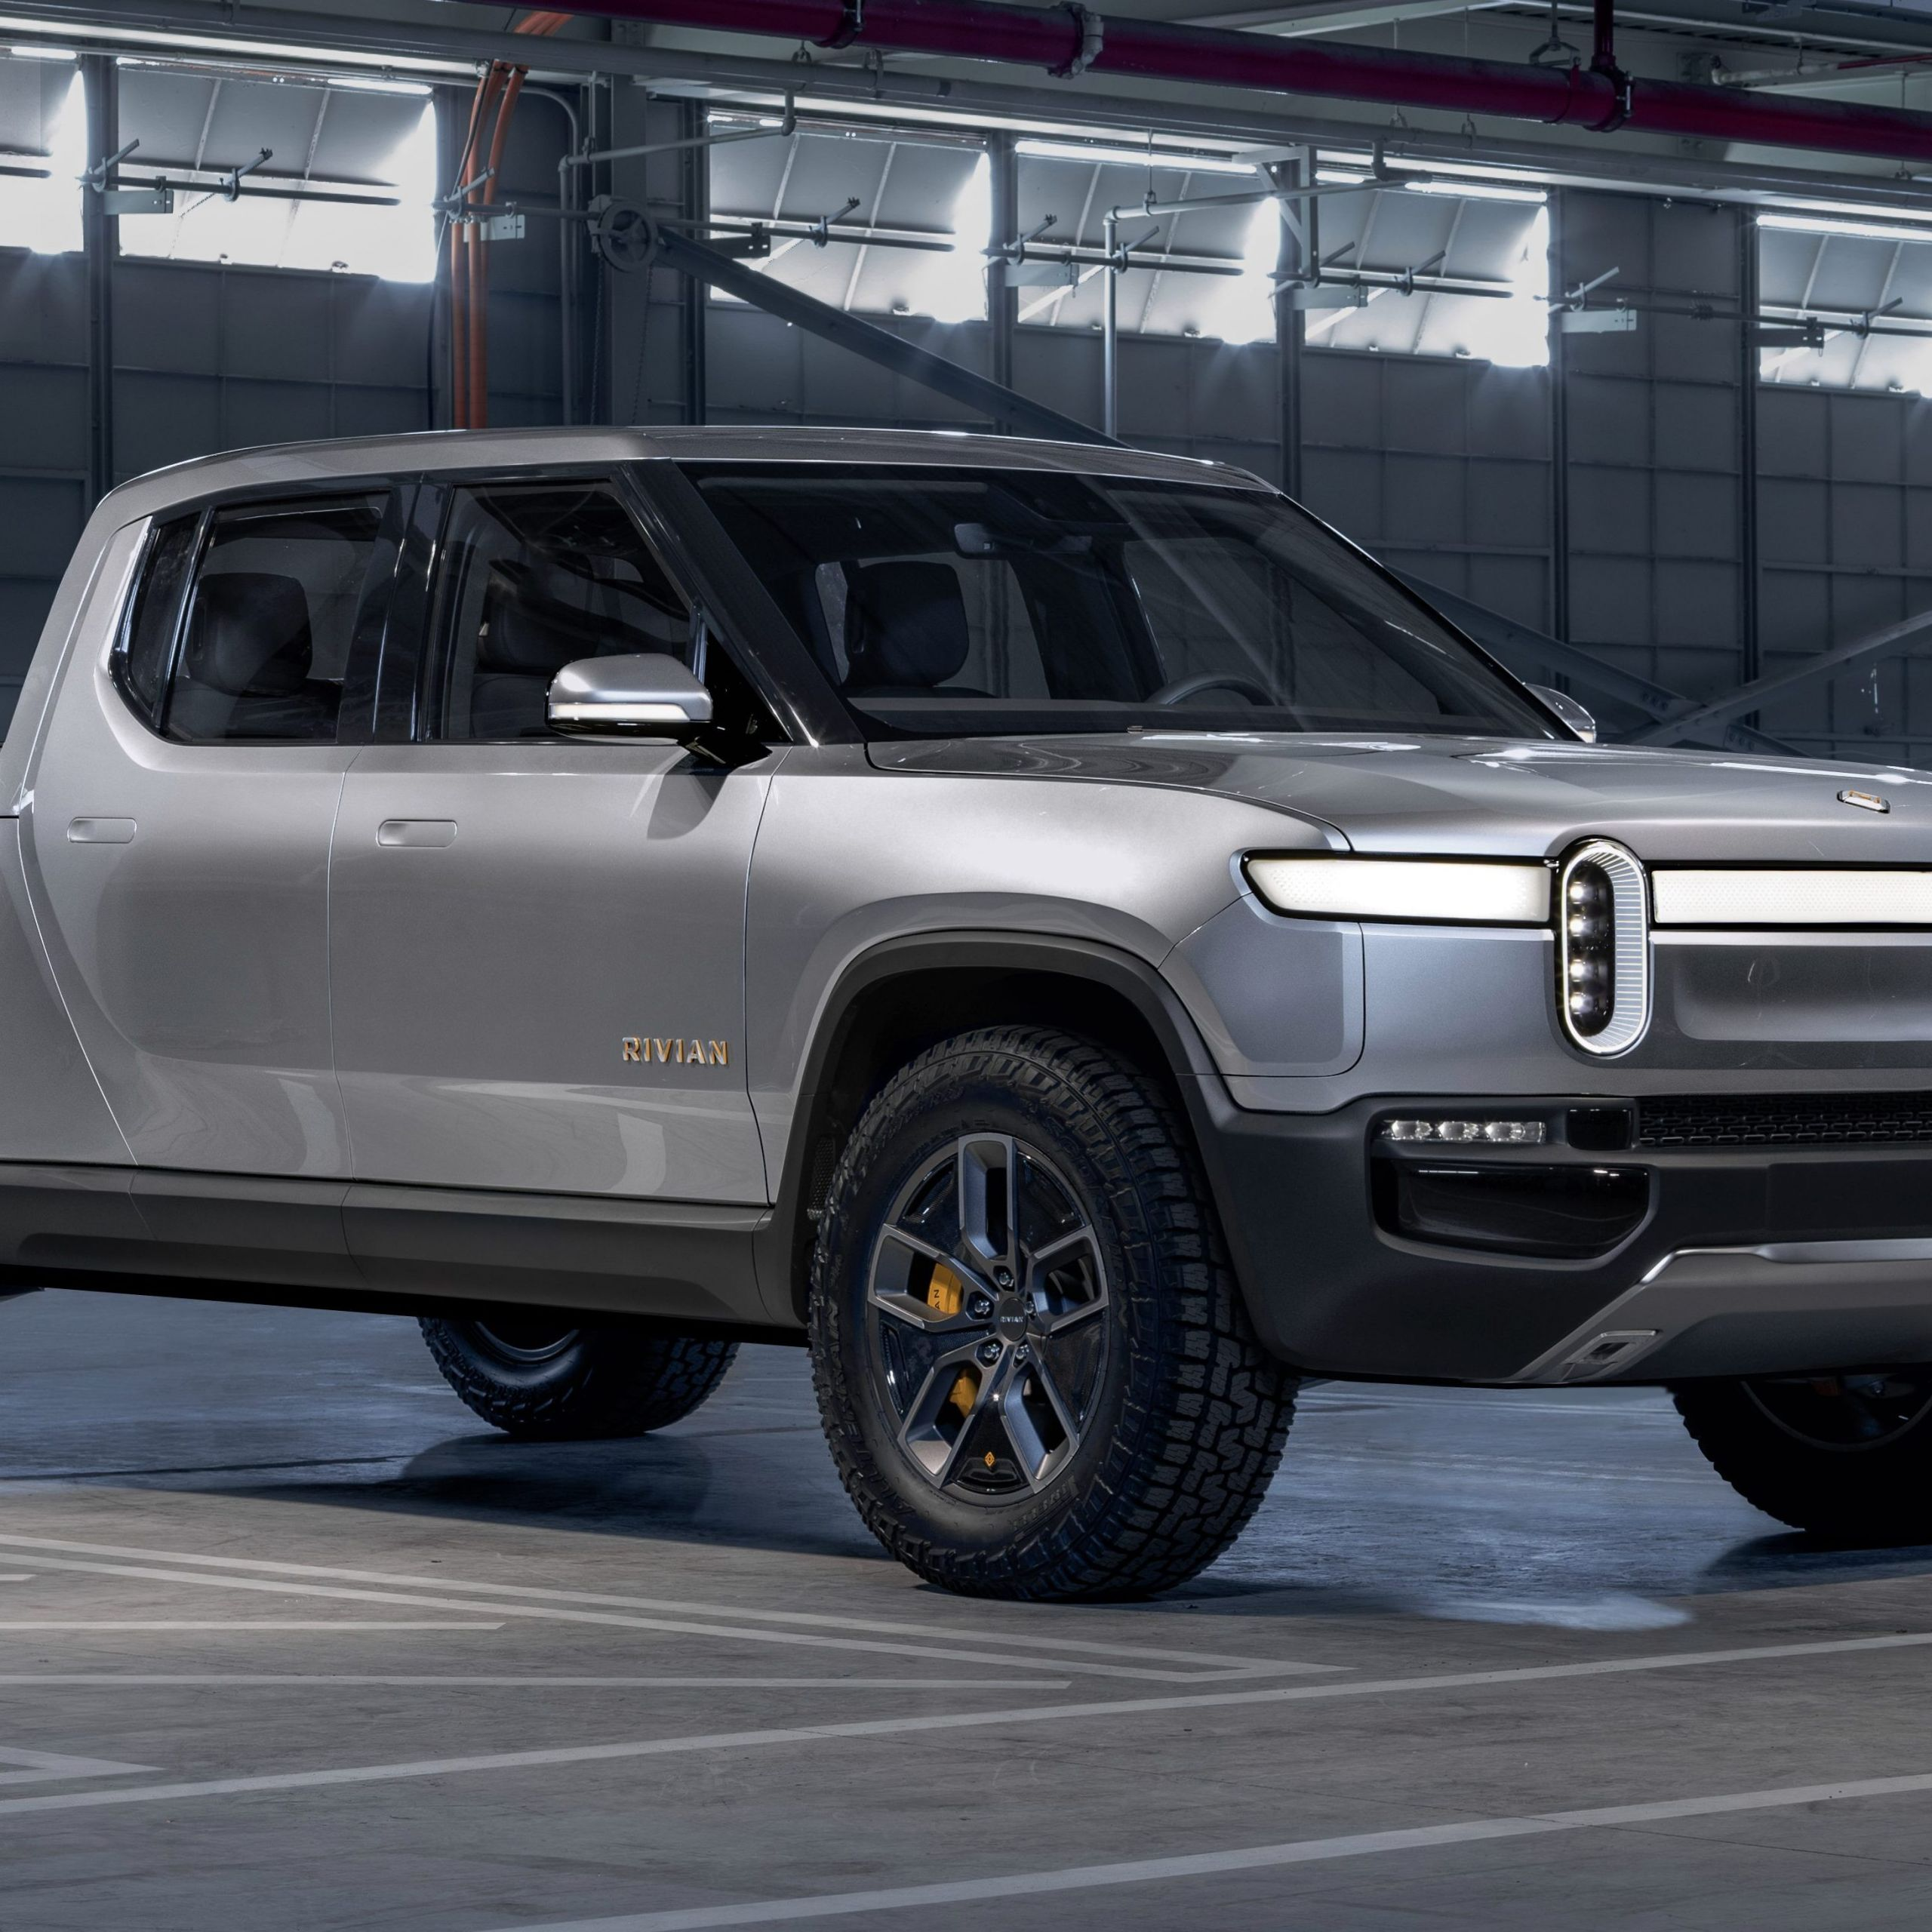 a rivian r1t front view